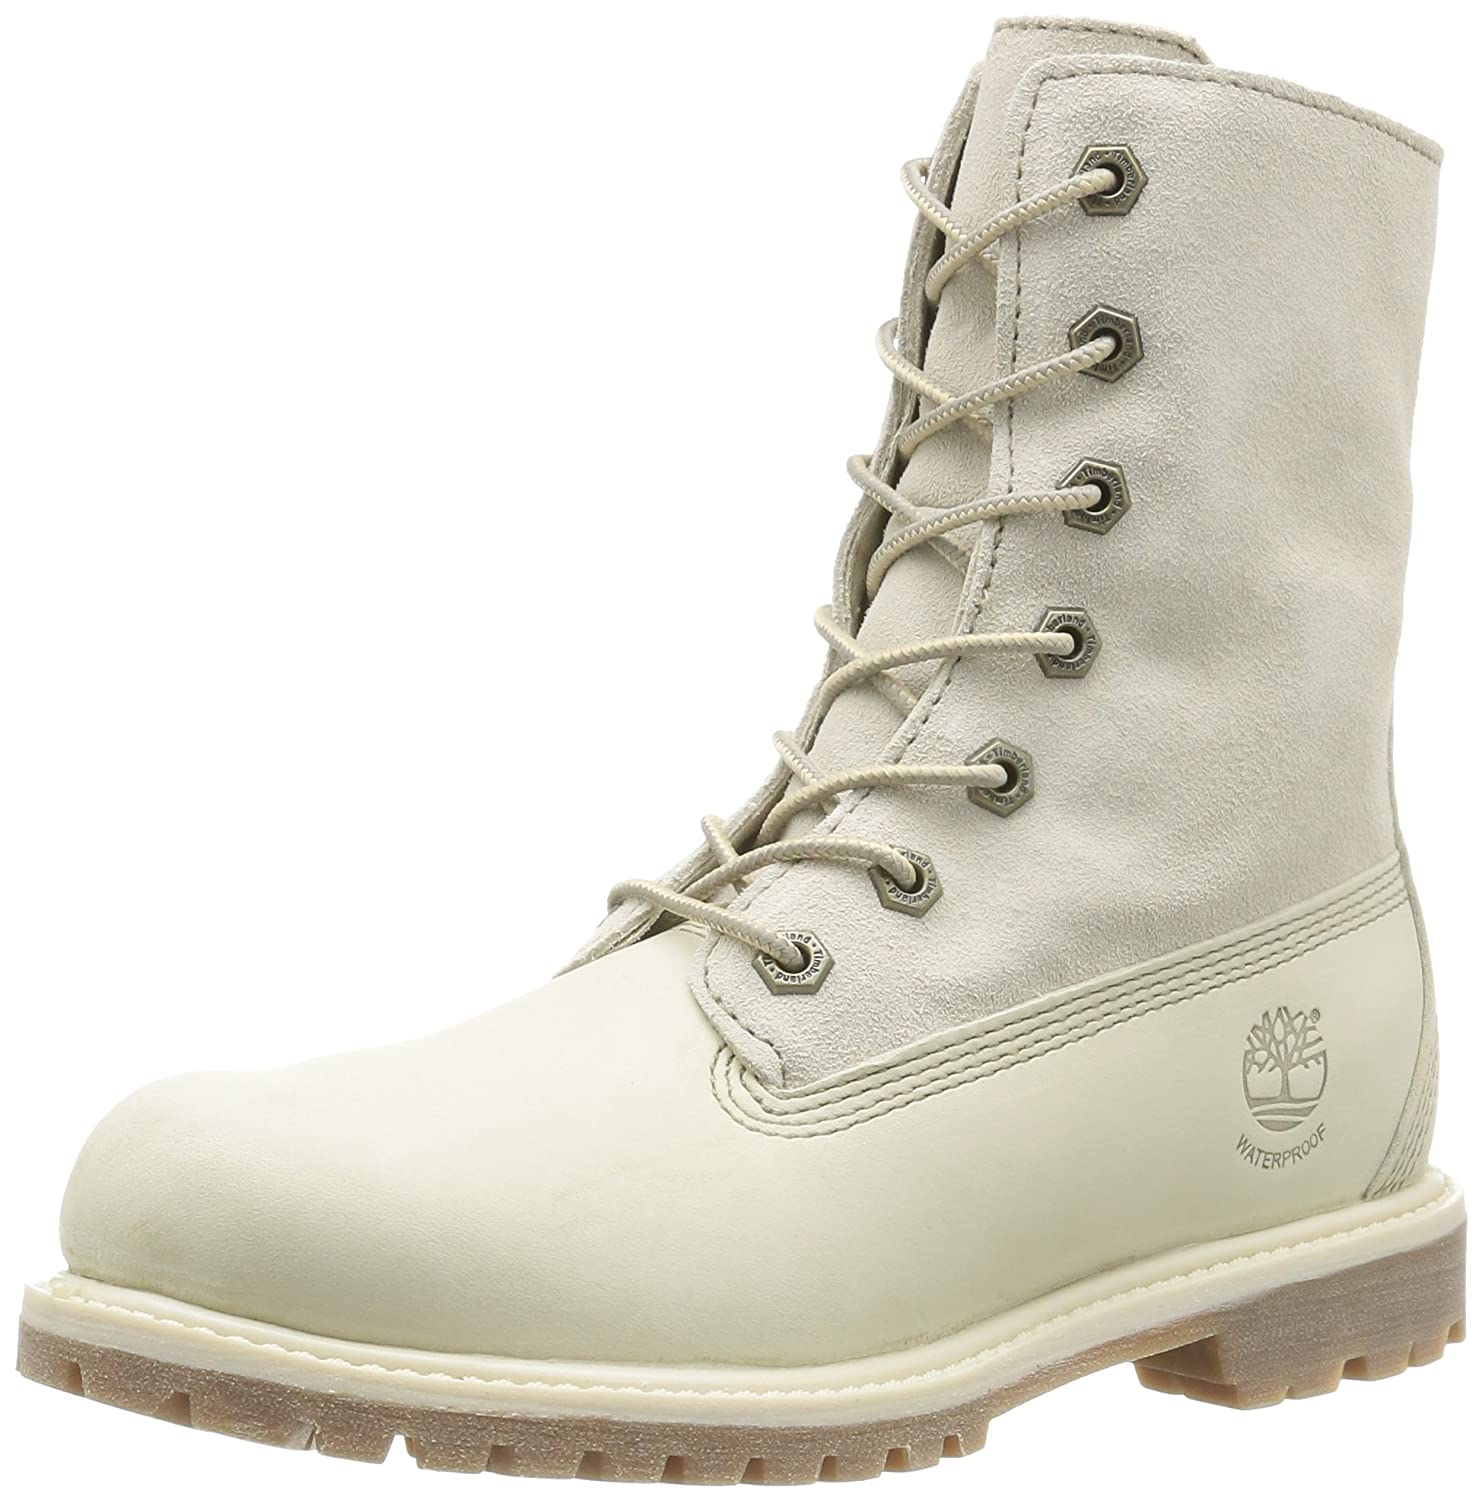 Timberland Auth Tedy Flce Flce Wp, Tedy Boots femme Auth Blanc (Winter White) 73992ee - shopssong.space